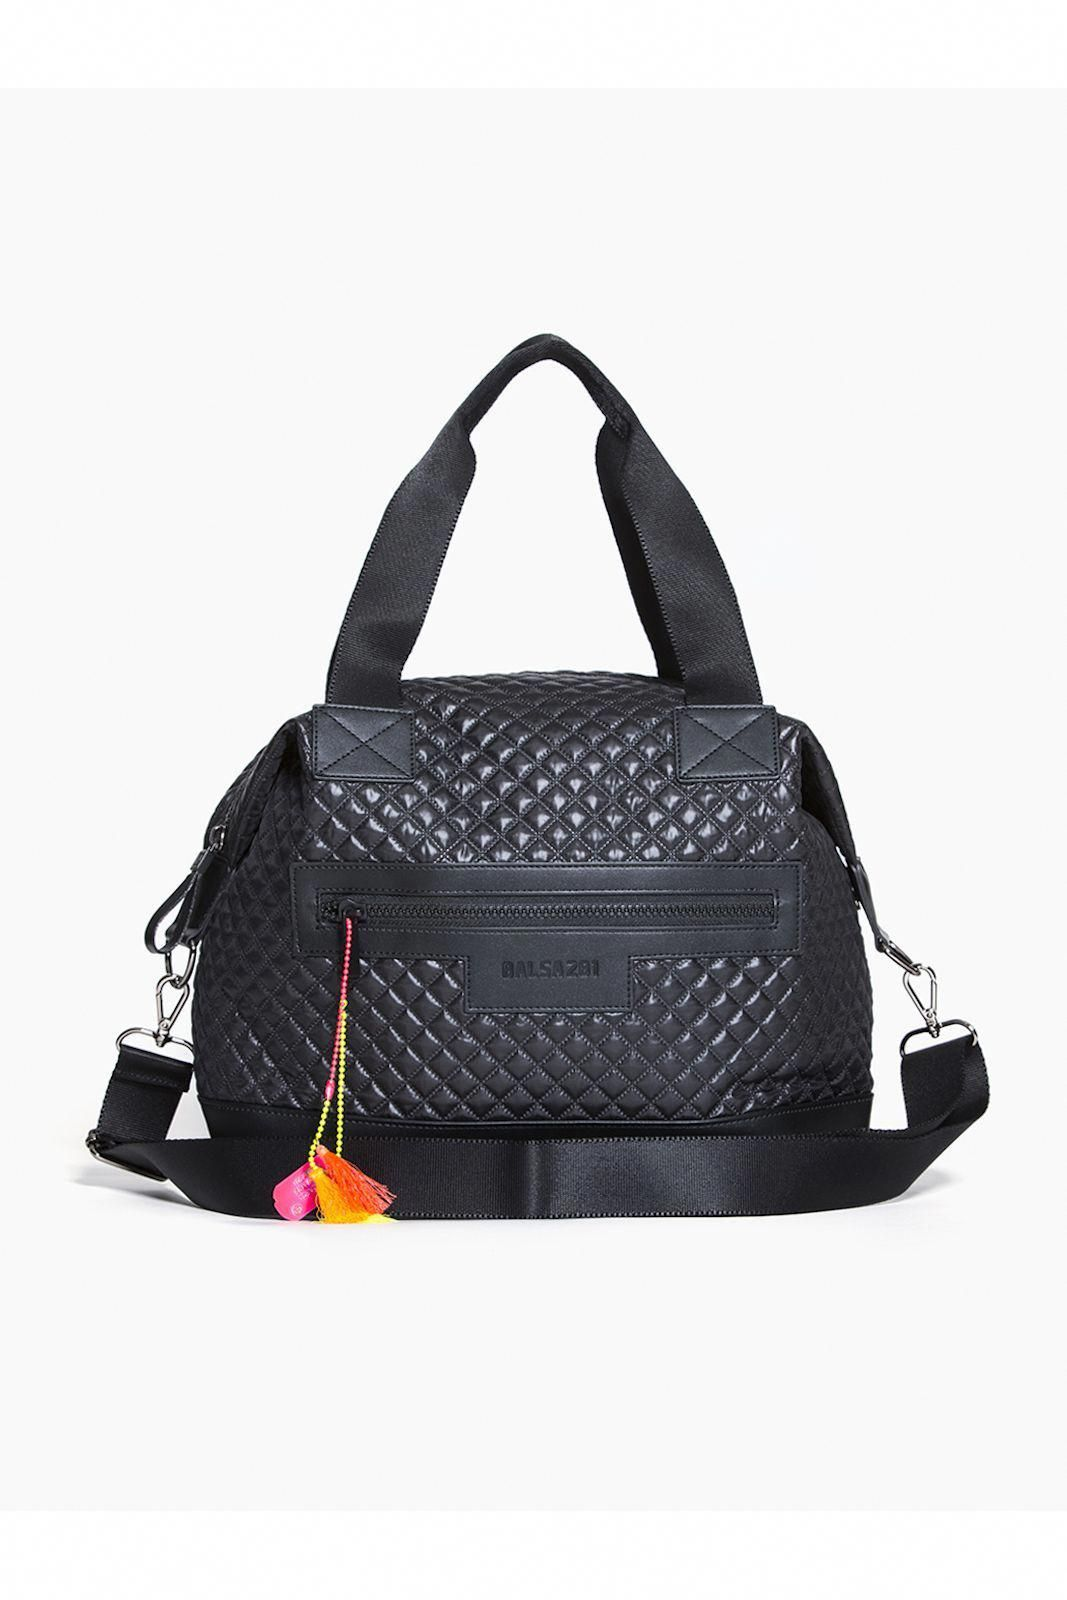 684f2b34376f These Gym Bags Are As Stylish As You Are  refinery29